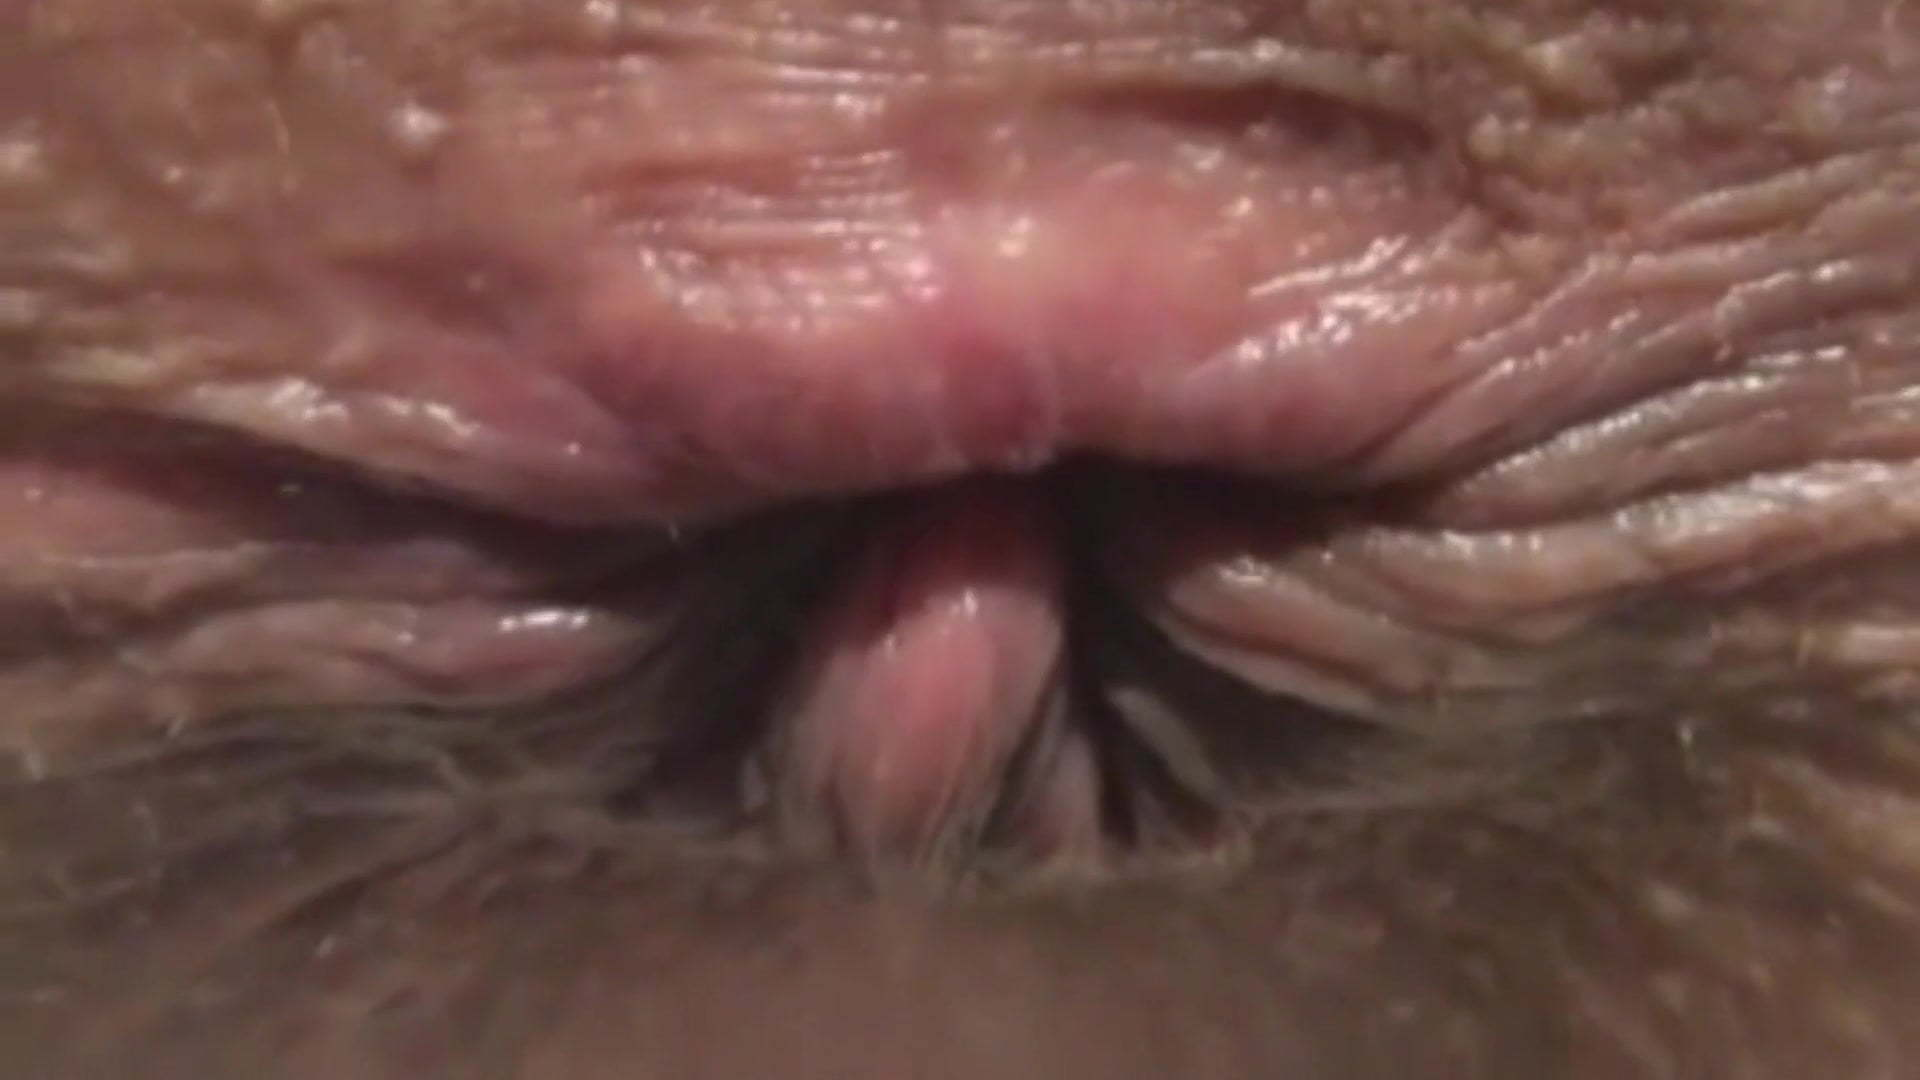 Black Creampie Close Up